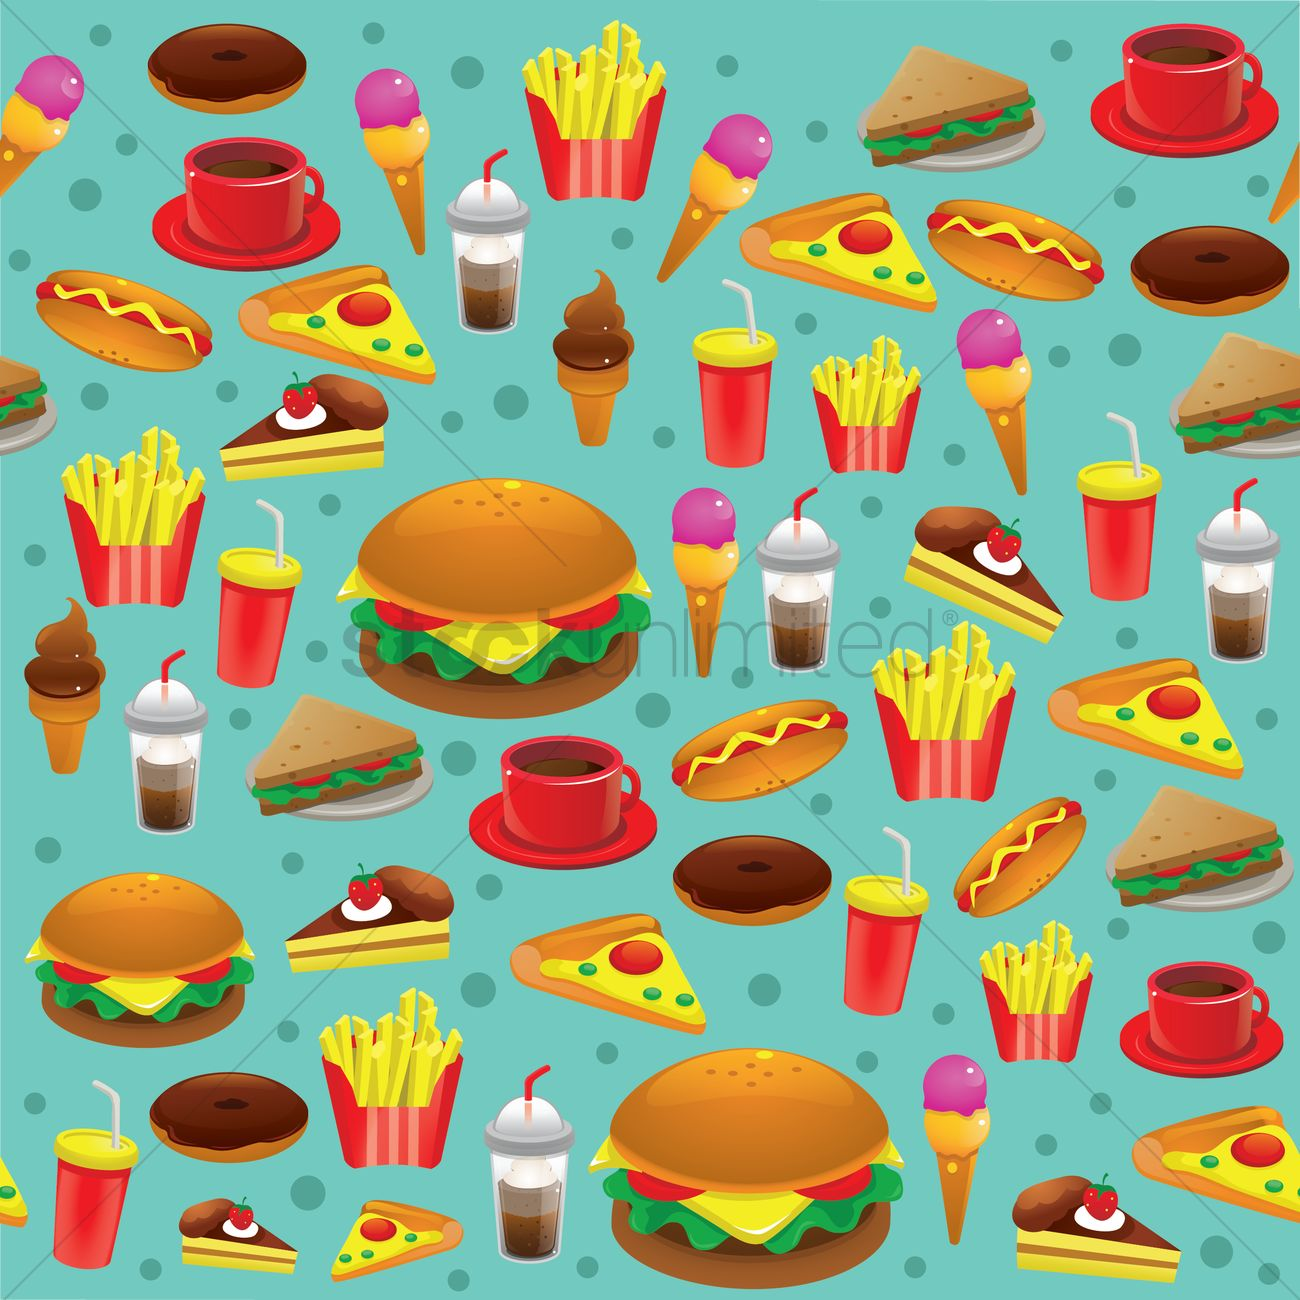 Food Background Food Background Vector Image  1305818  Stockunlimited